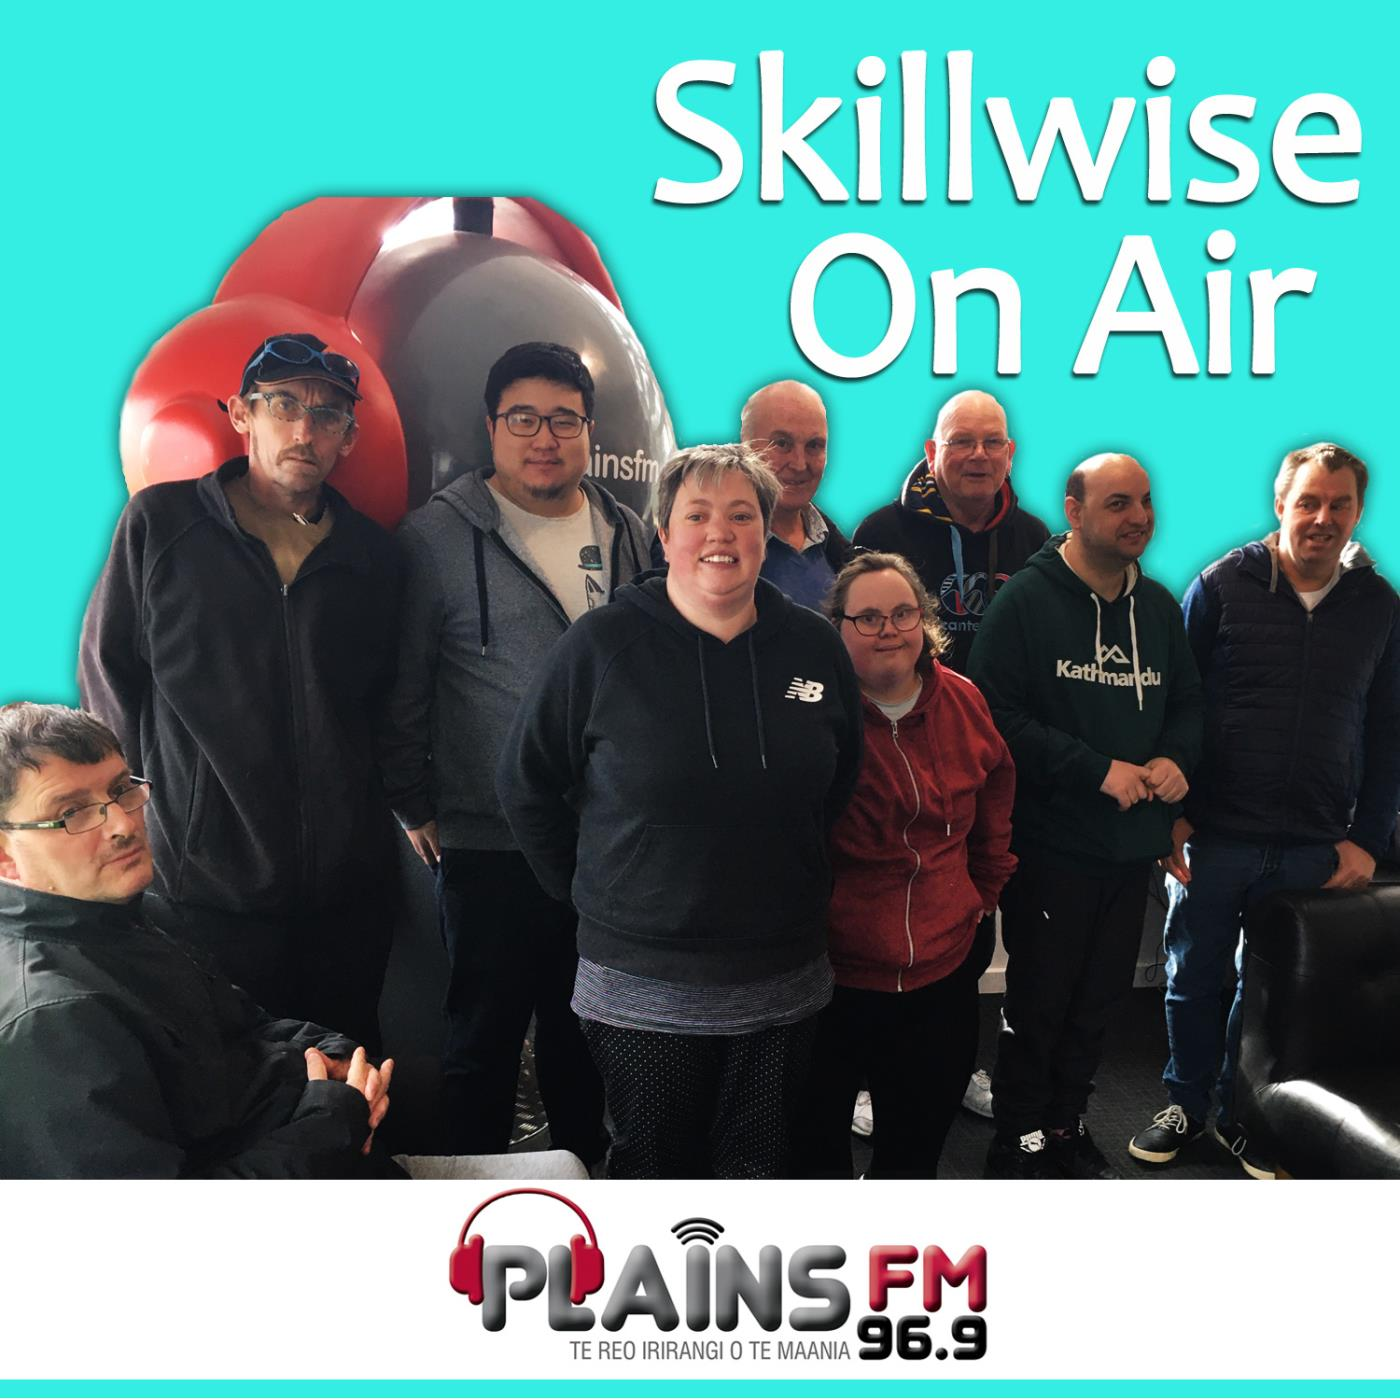 Skillwise On Air